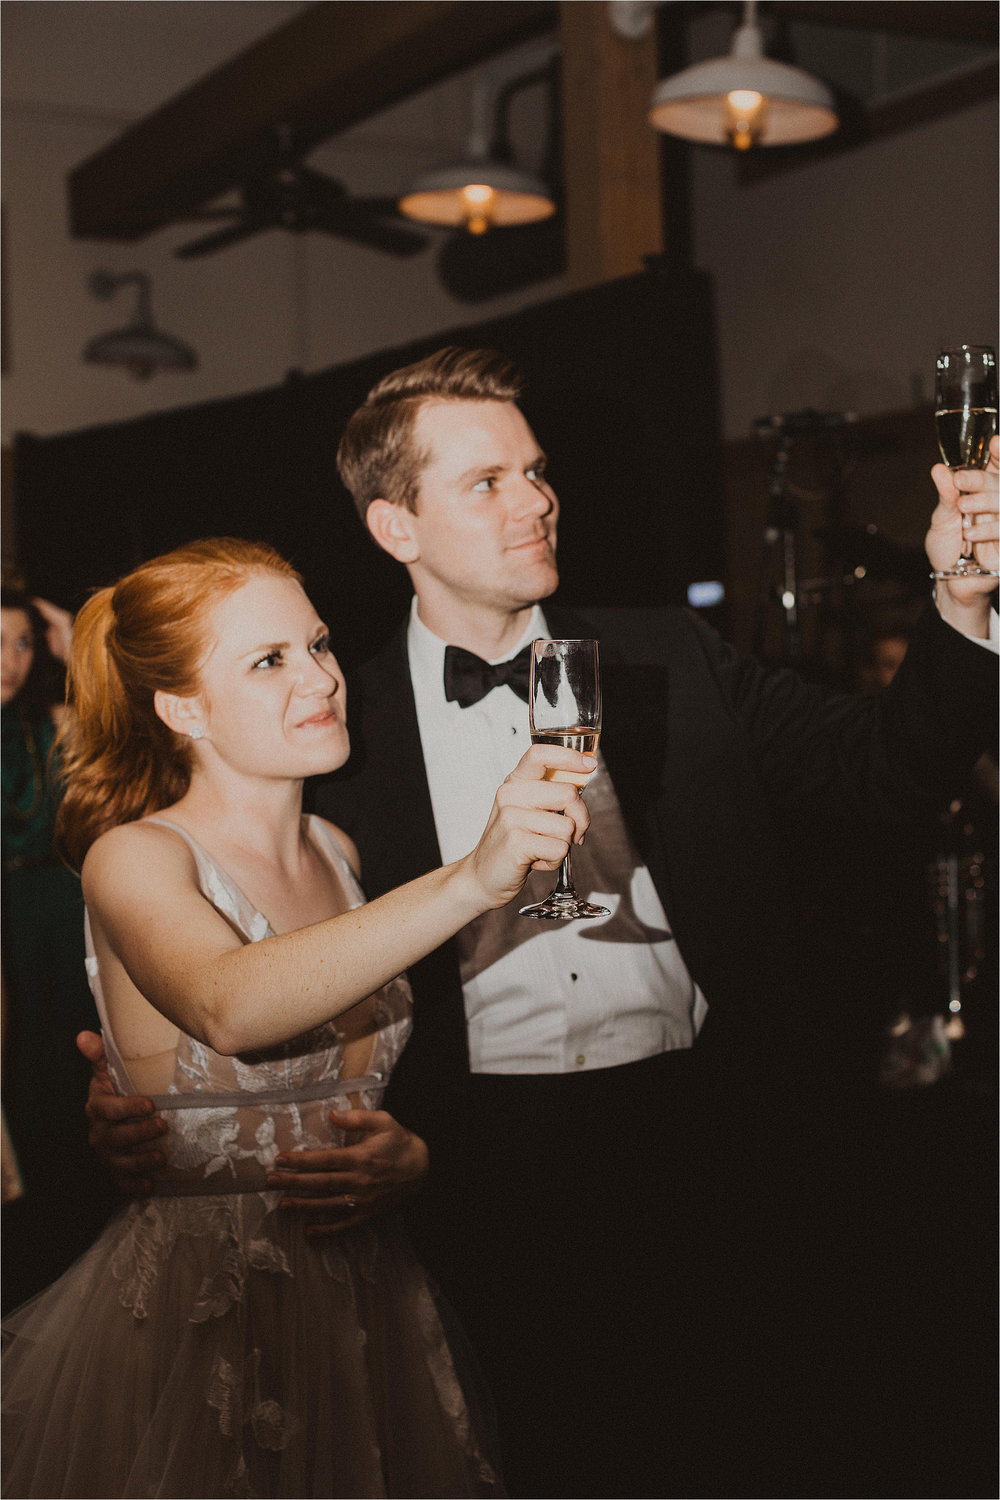 NashvilleWedding_NewYearsEveWedding_NYE_NashvilleWeddingPhotographer_LovelessWedding_Tennessee_MollyPeachPhotography-117.jpg